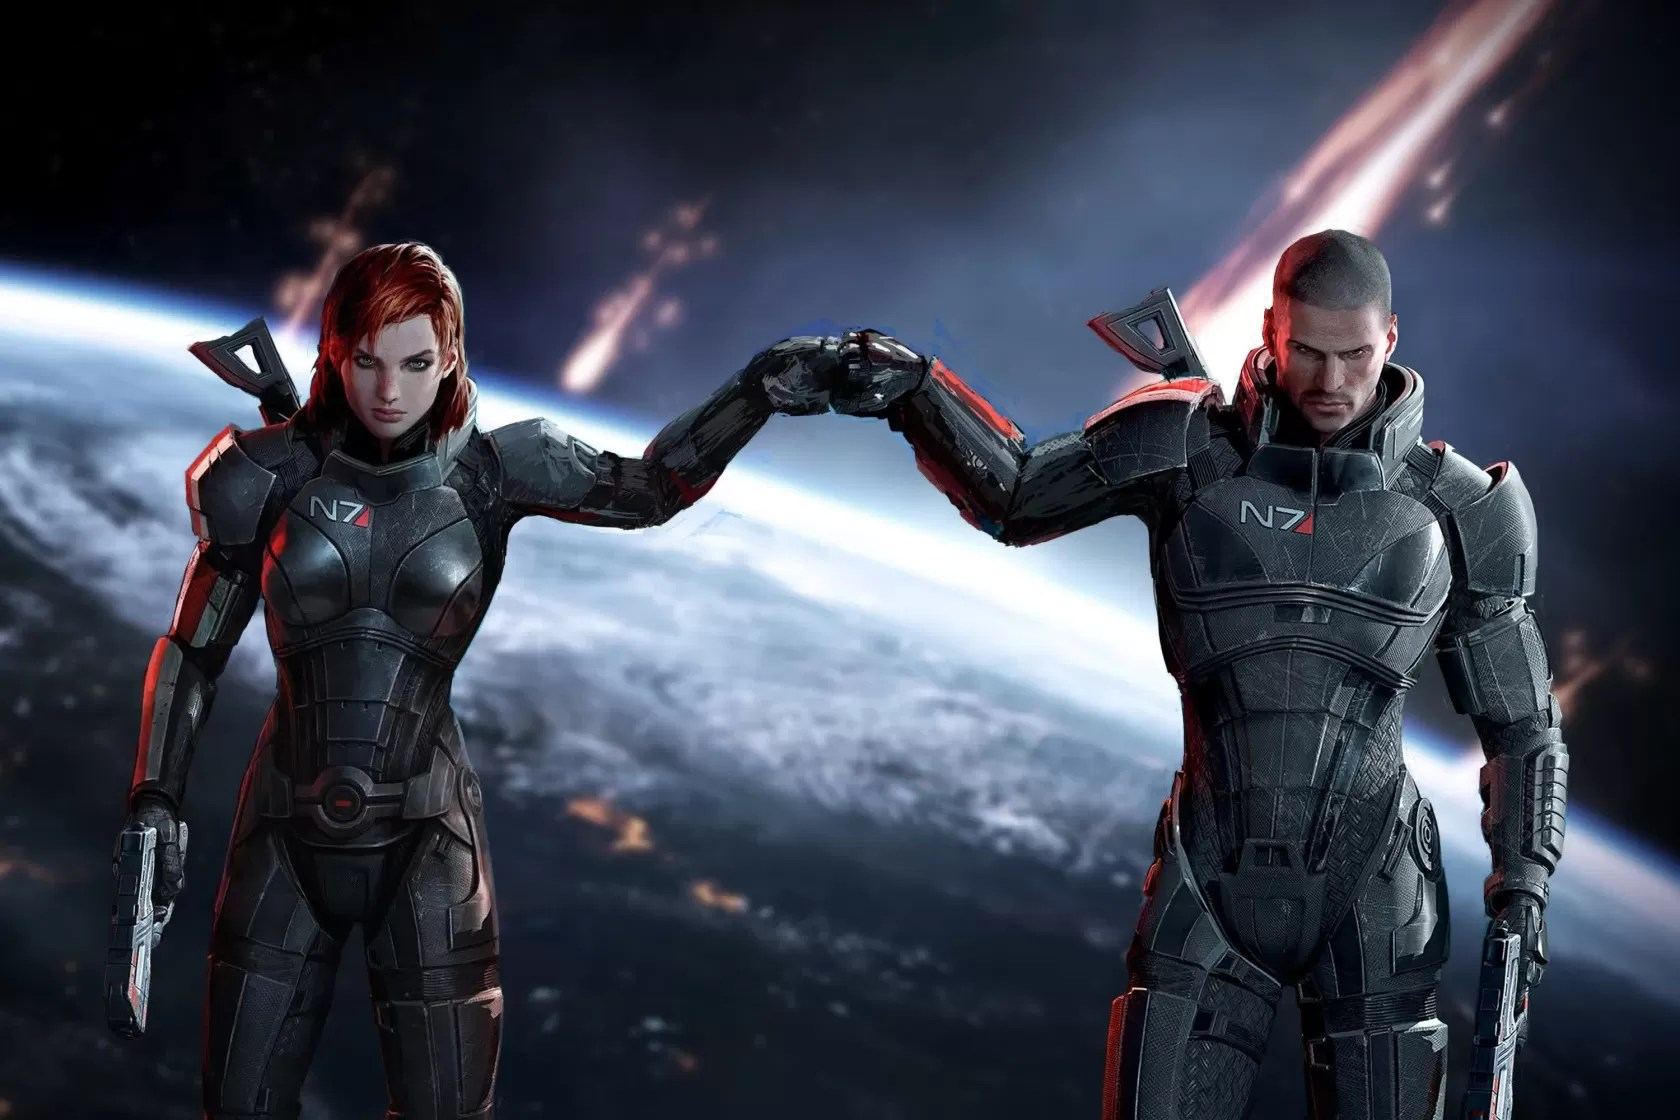 Mass Effect Legendary Edition' receives a rating in South Korea, fueling  rumors of a remastered trilogy - Kogonuso